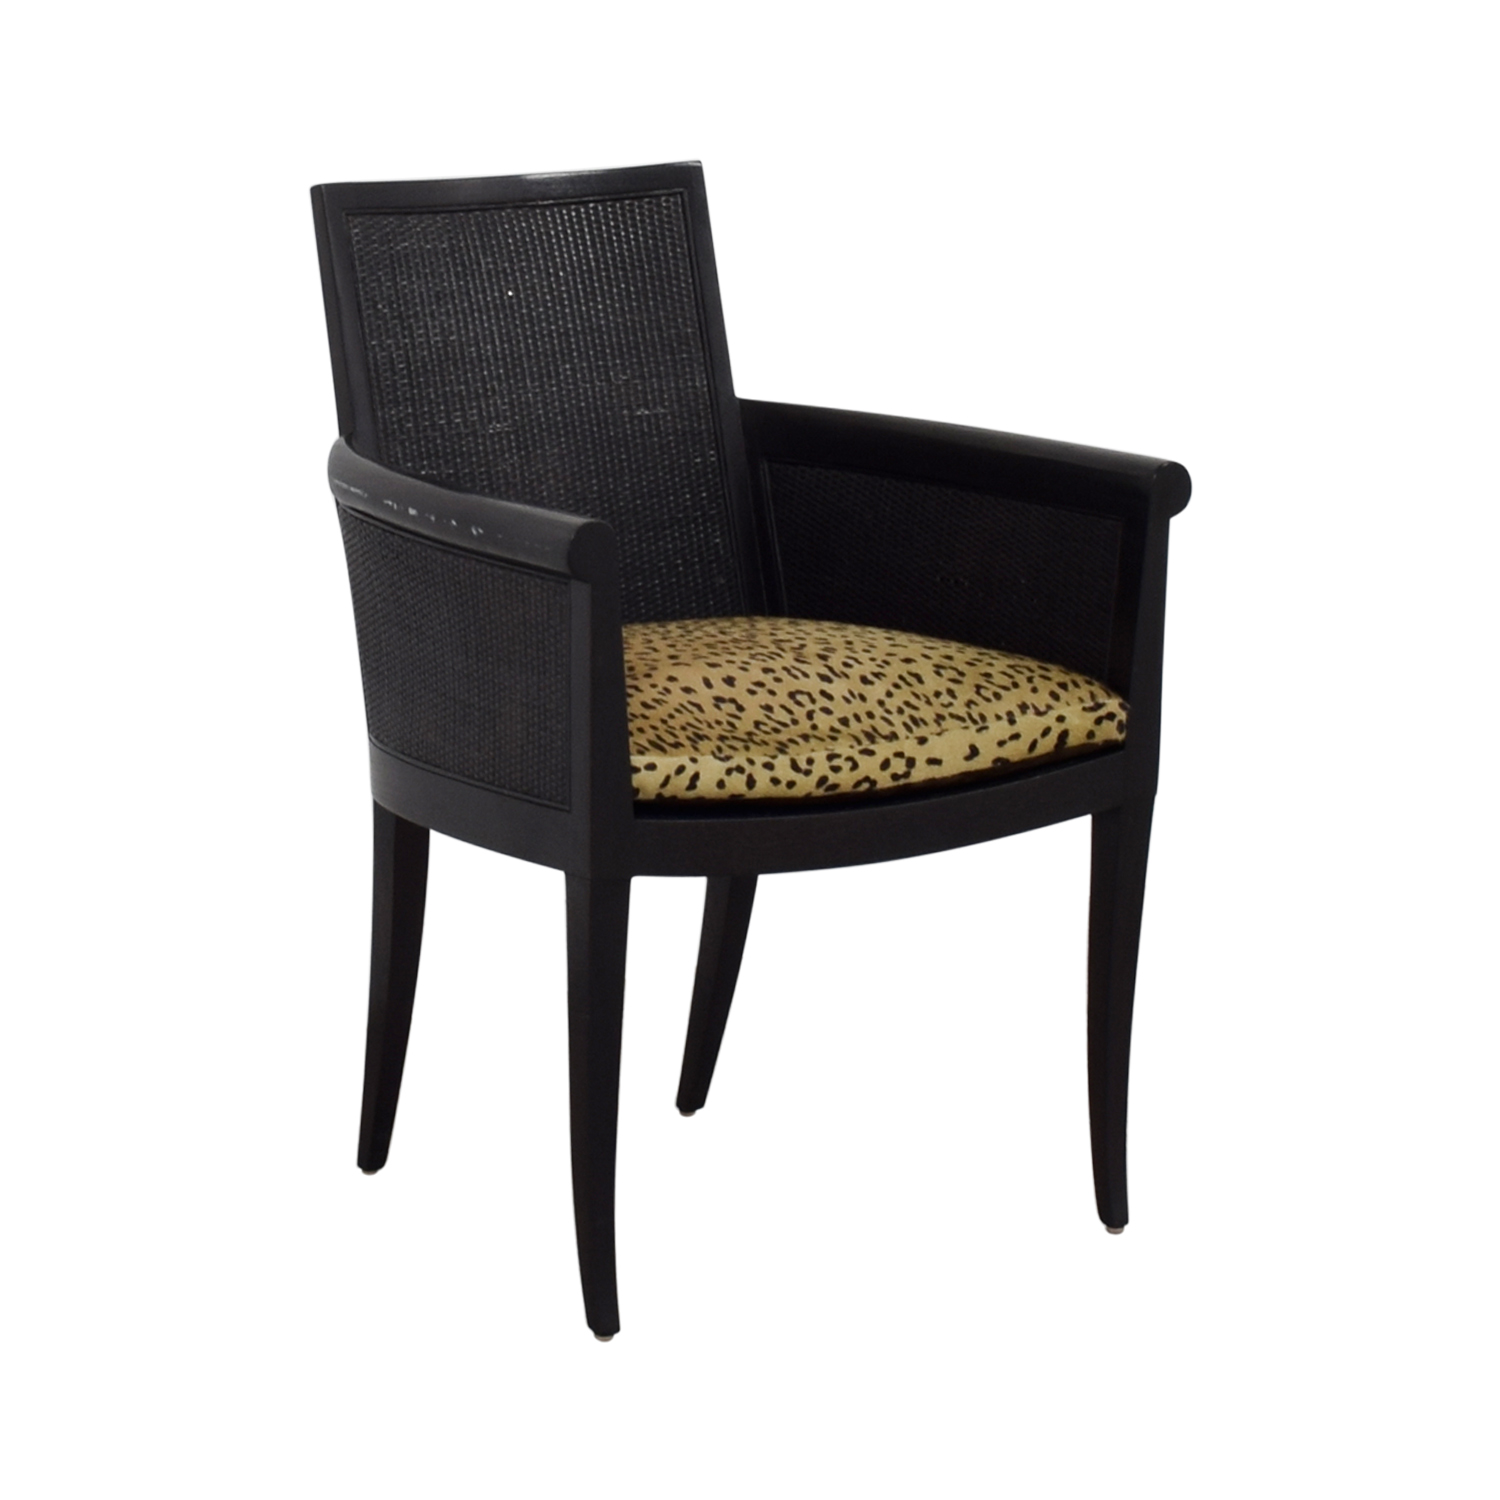 Sutherland Sutherland Cane Armchair with Pony Skin Leopard Cushion LEOPARD